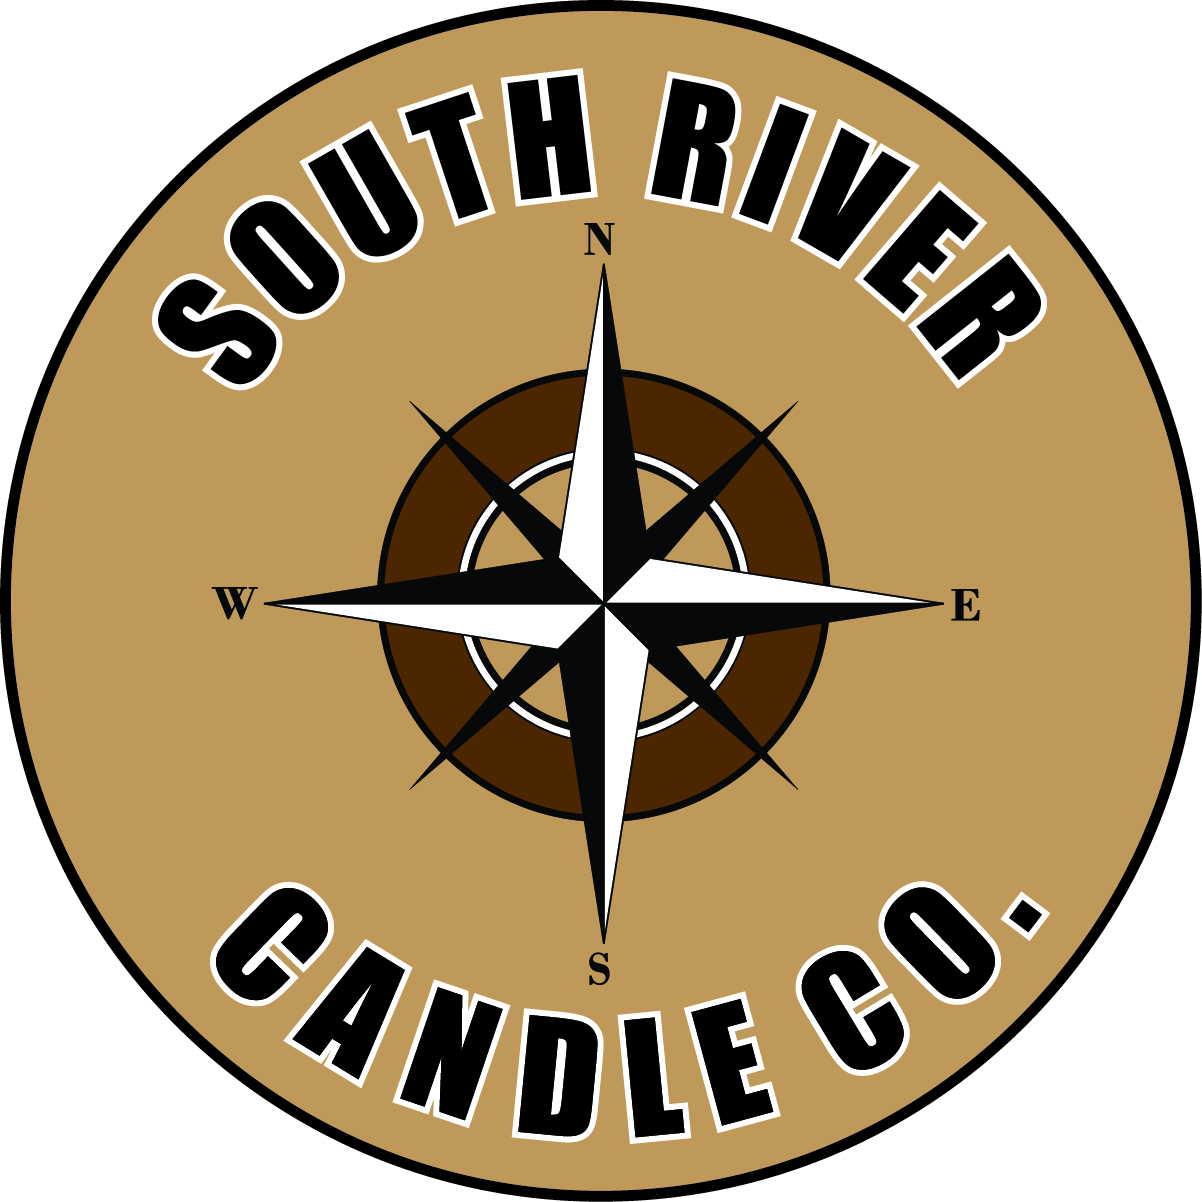 South River Candle Co. Logo